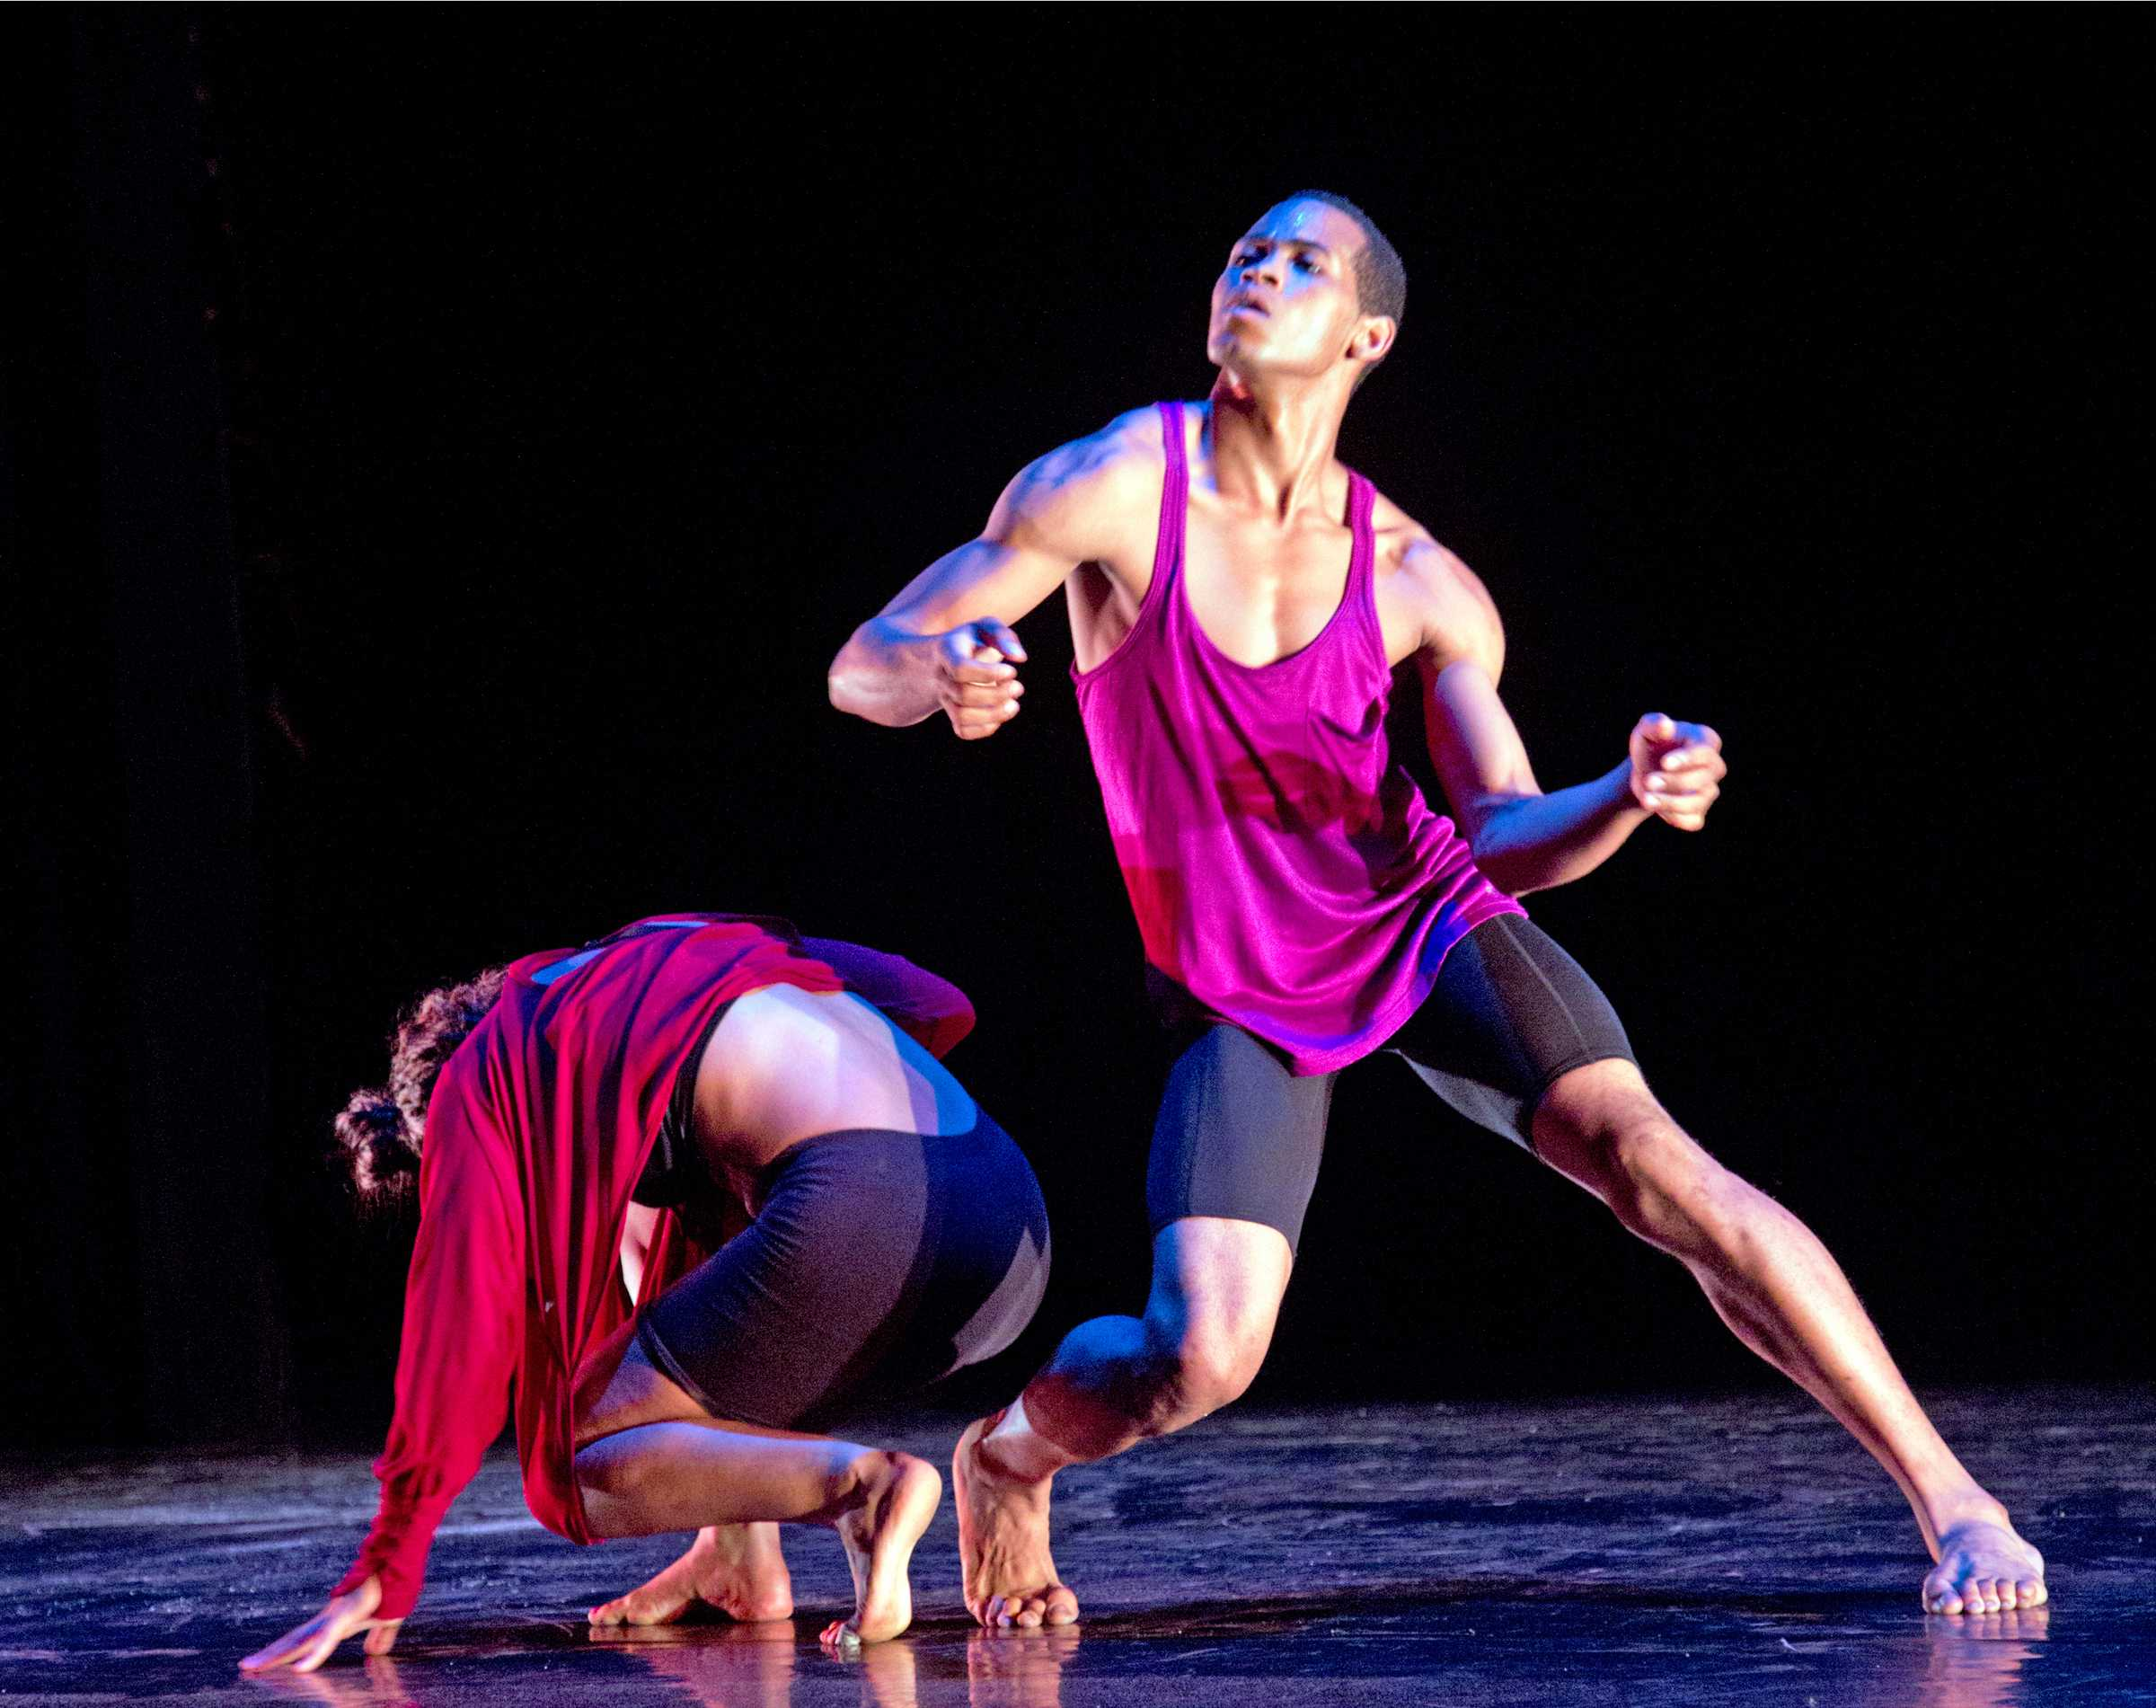 Jamie Nixon, a student at City College, performs a duet for the Young Choreographers Showcase at Saville Theatre on Feb. 23, winning third place. Courtesy photo by Manuel Rotenberg